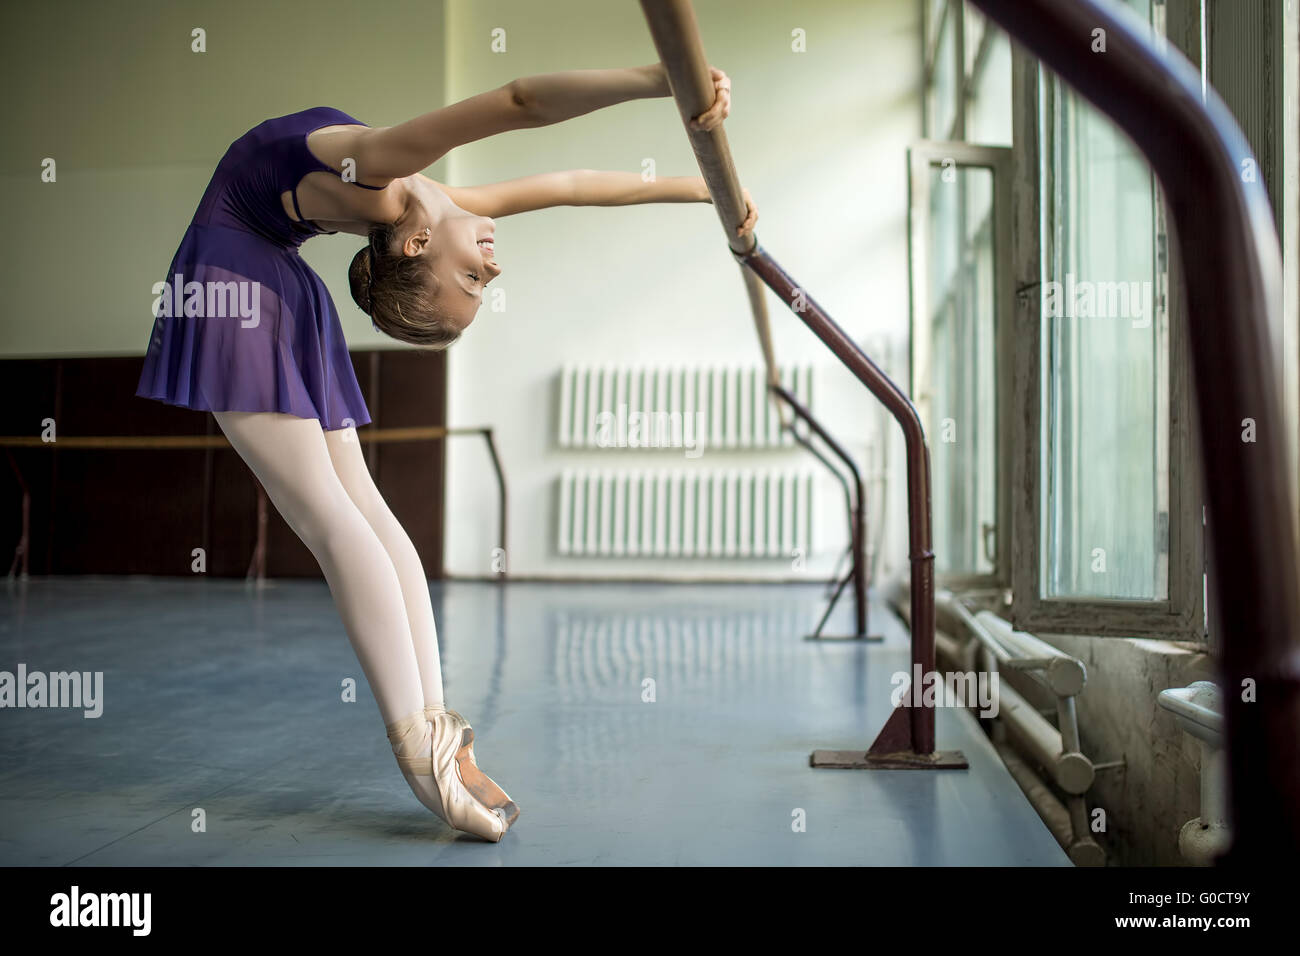 Young dancer doing a workout in the classroom near barre. Stretc - Stock Image